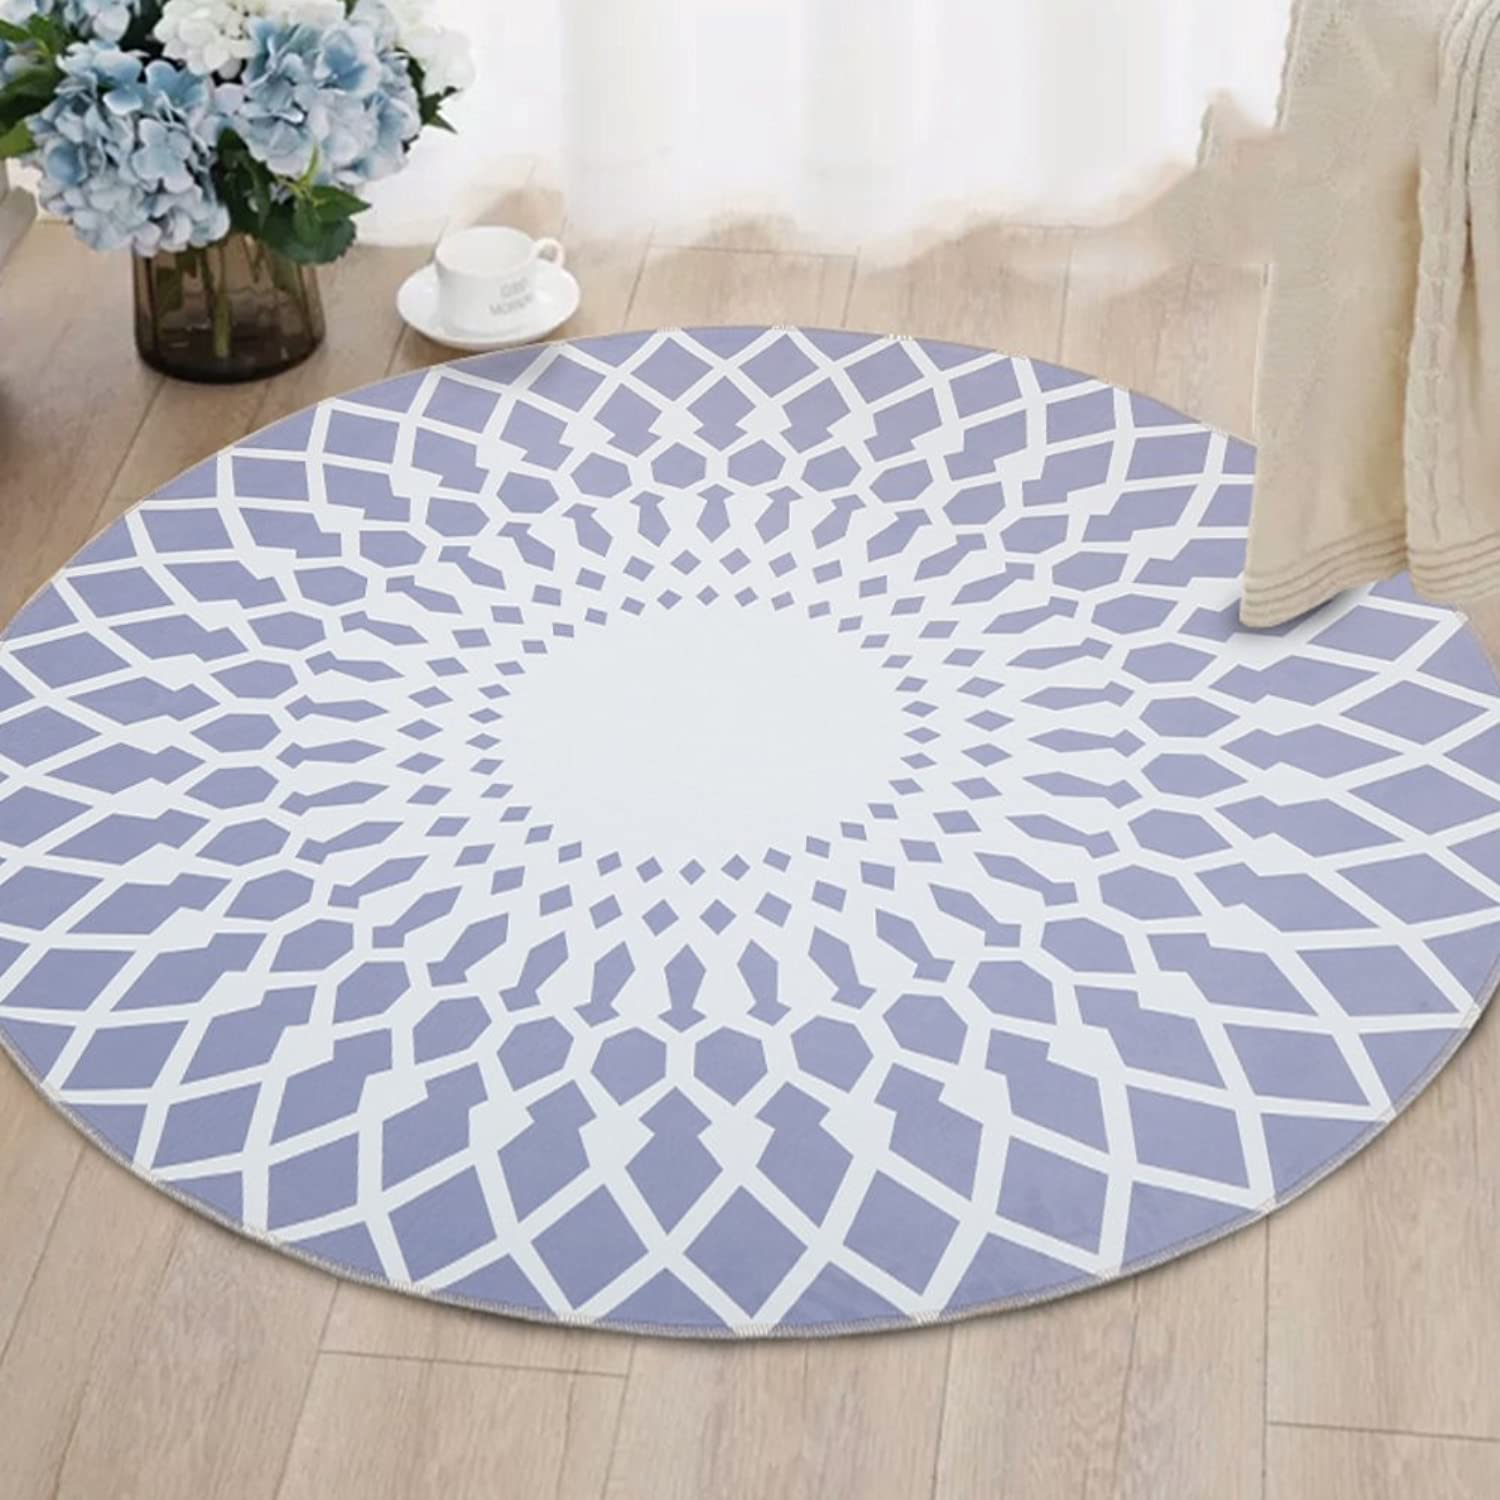 Round carpet computer chair cushion hanging basket pad living roombedroom study simple-C 120x120cm(47x47inch)